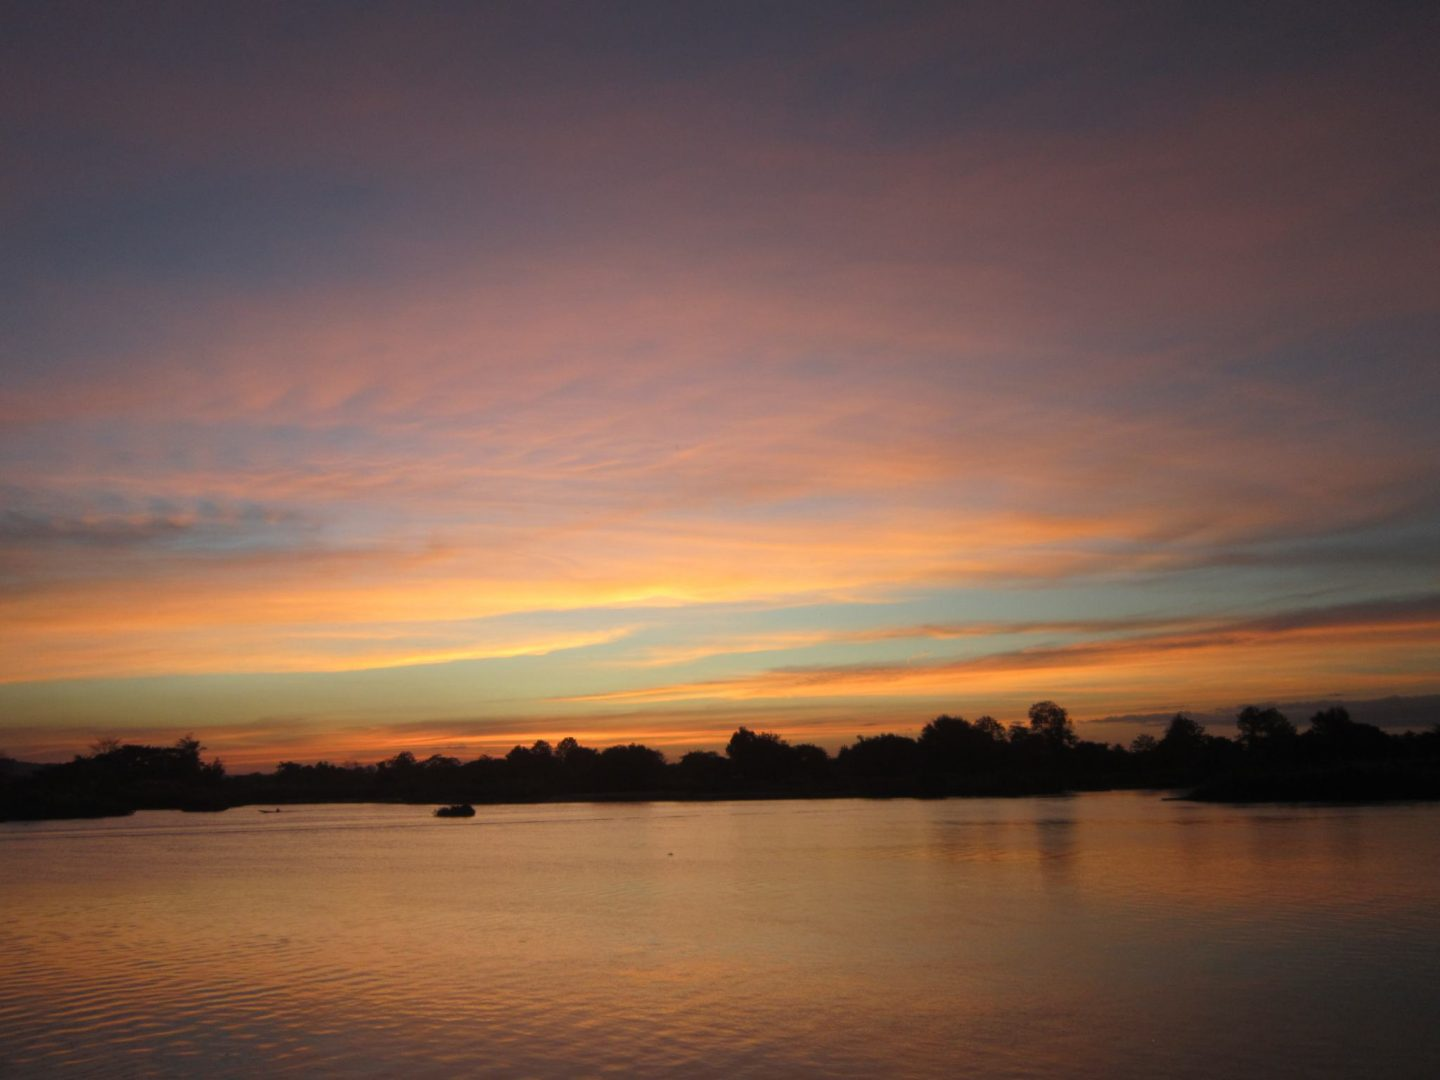 Sunset in the 4000 Islands - orange and blue sky over water